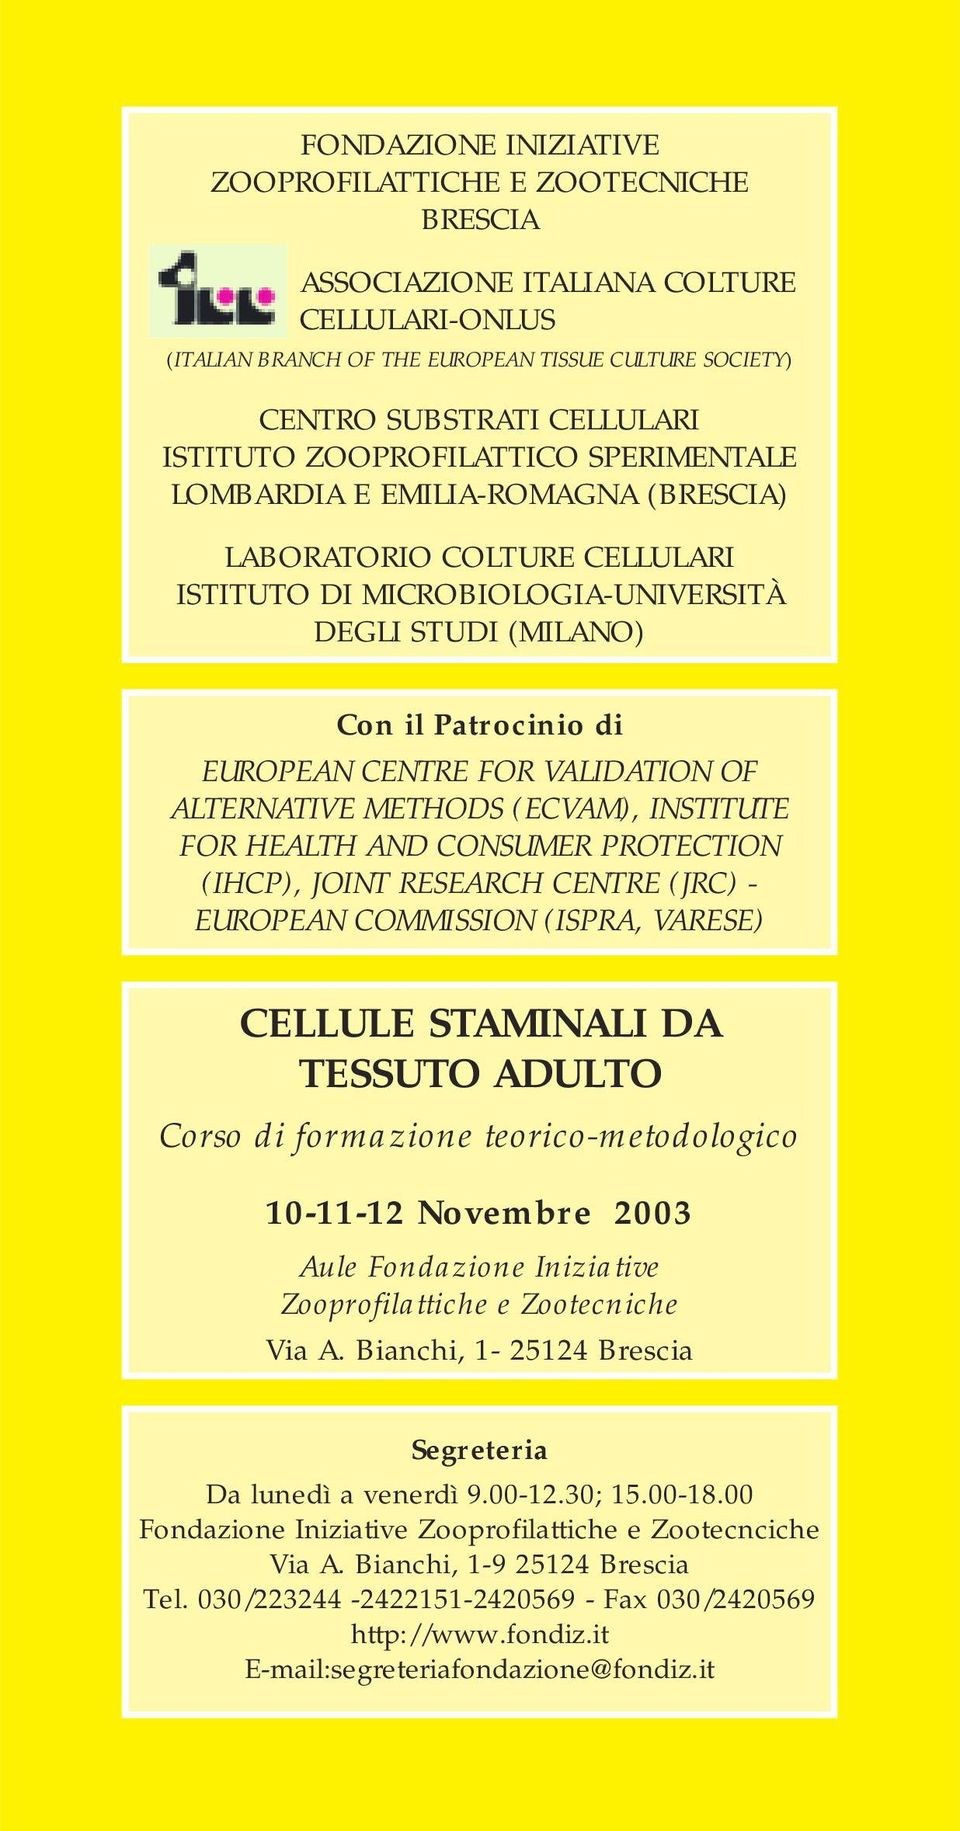 VALIDATION OF ALTERNATIVE METHODS (ECVAM), INSTITUTE FOR HEALTH AND CONSUMER PROTECTION (IHCP), JOINT RESEARCH CENTRE (JRC) - EUROPEAN COMMISSION (ISPRA, VARESE) CELLULE STAMINALI DA TESSUTO ADULTO